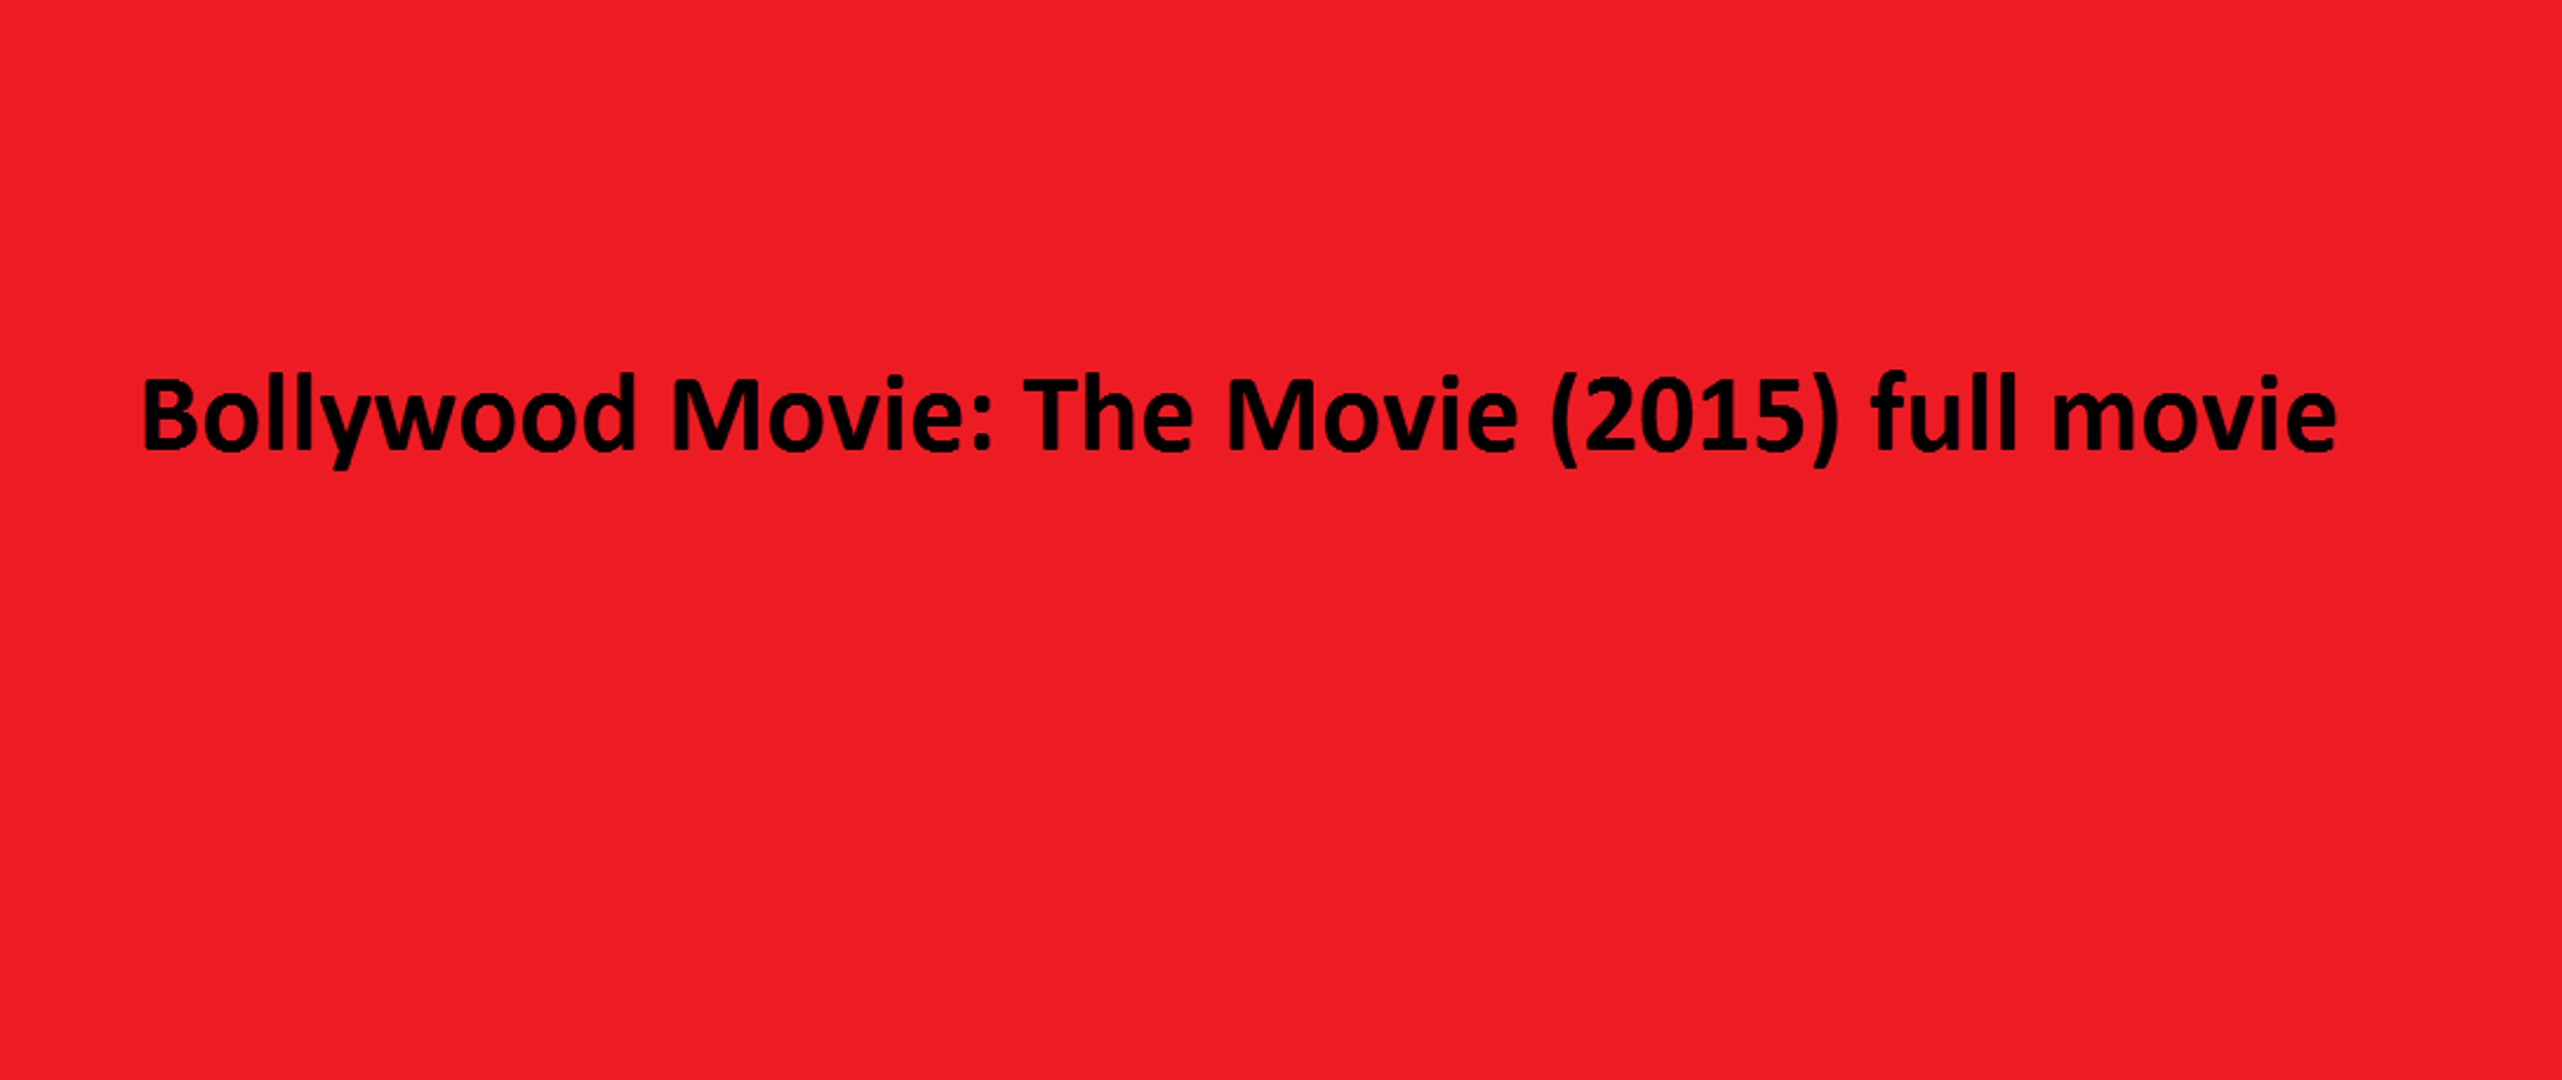 Download Bollywood Movie: The Movie (2015) full